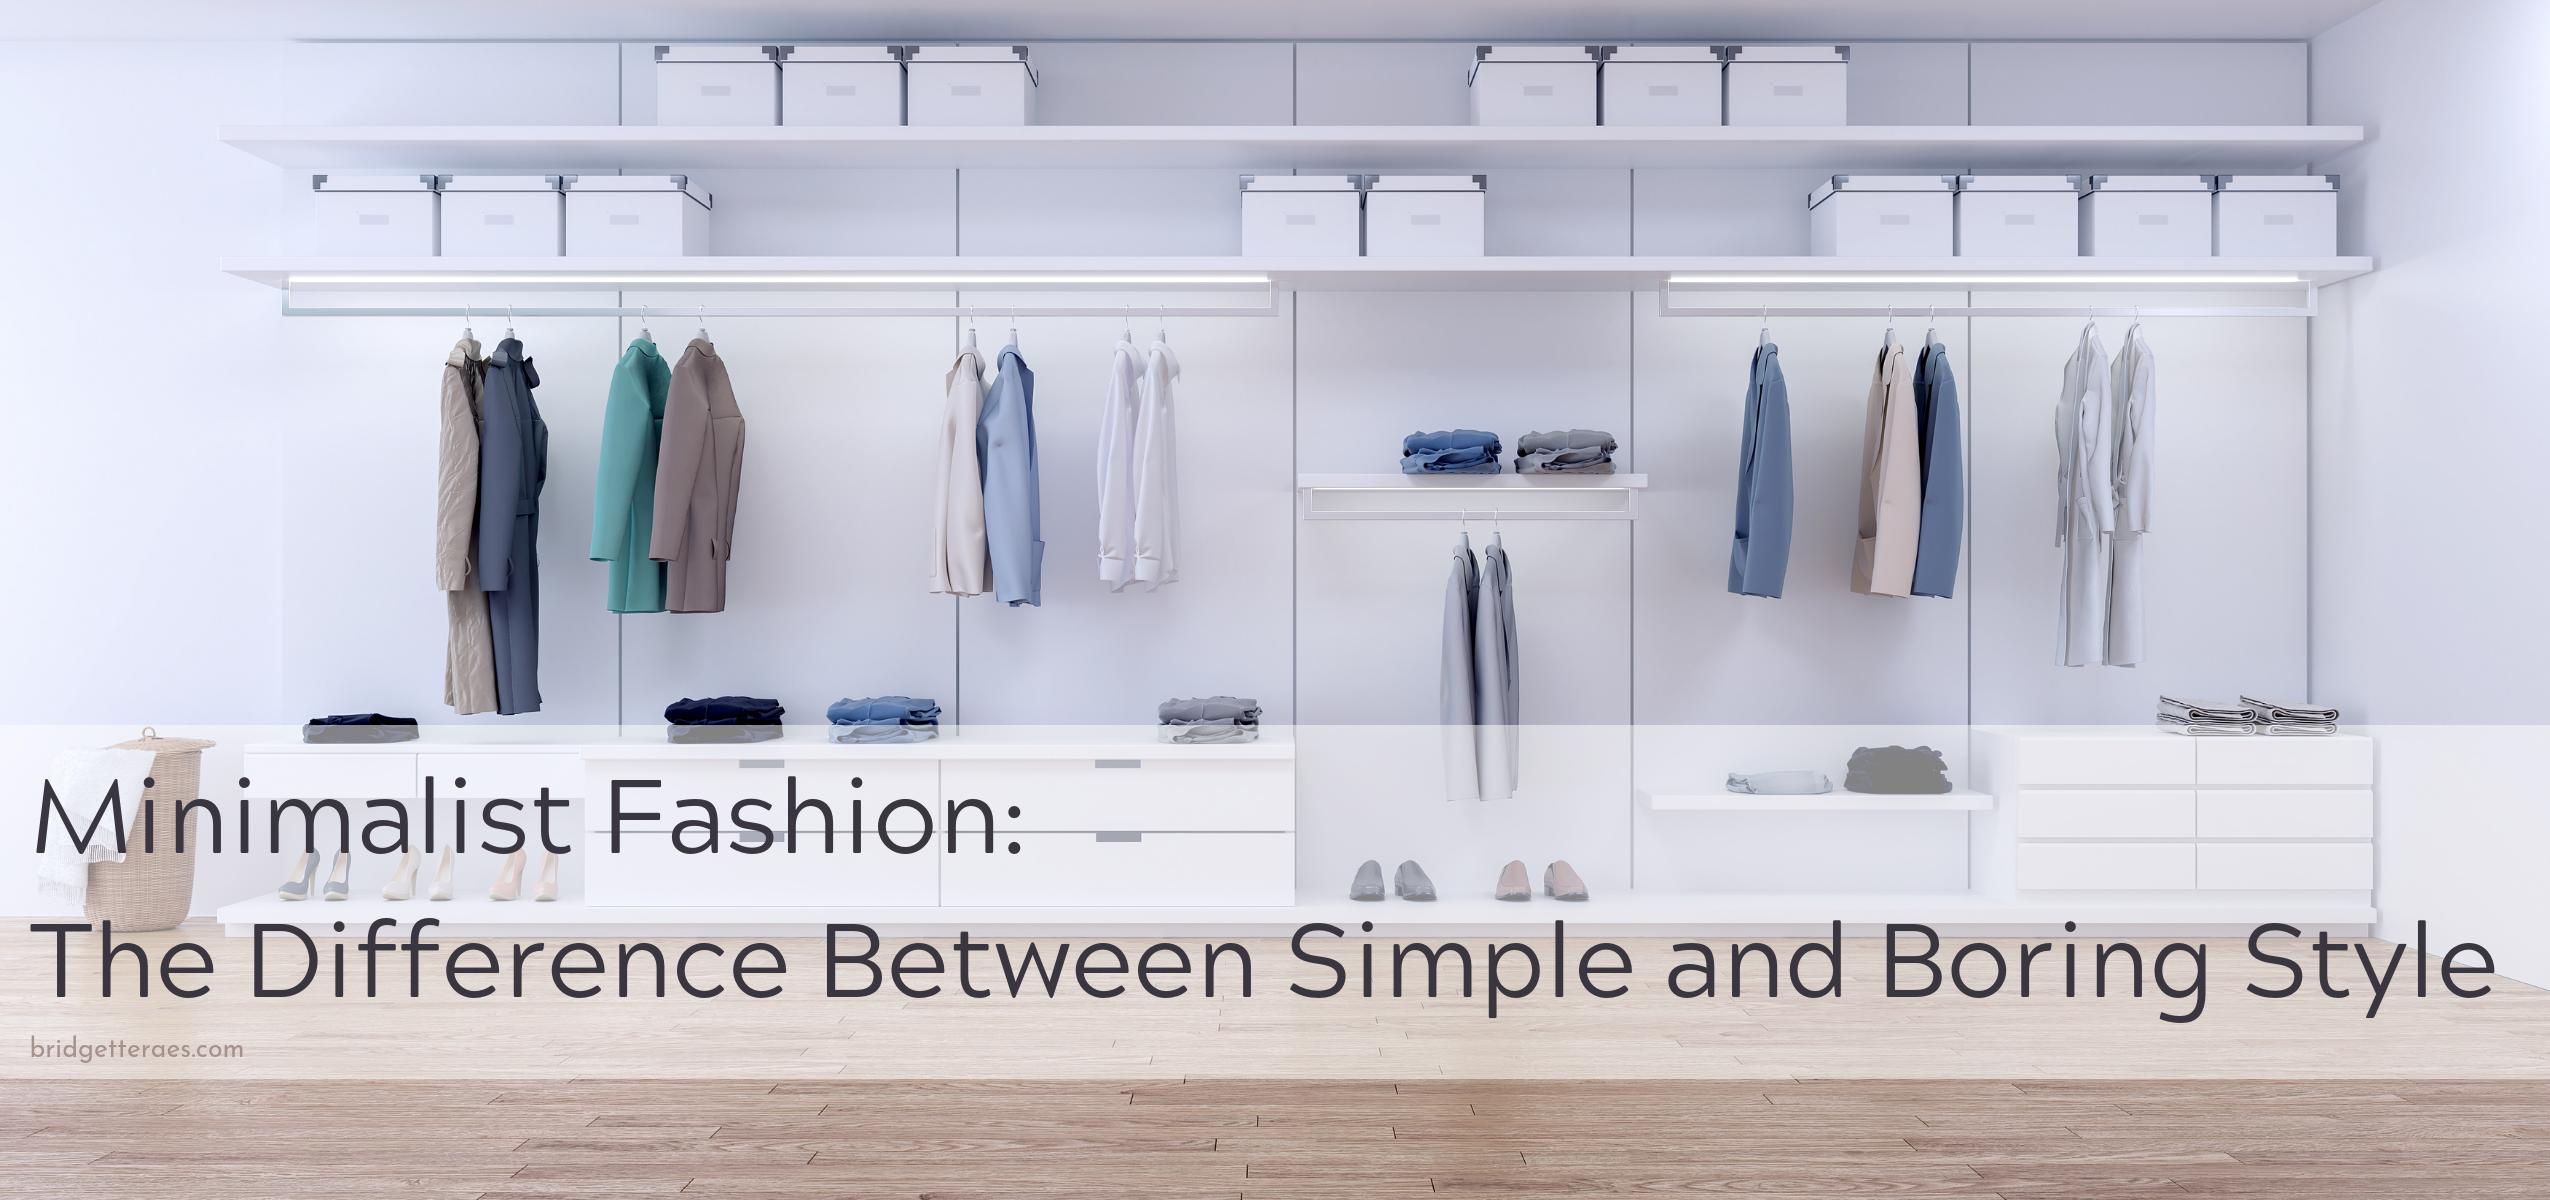 Minimalist Fashion: The Difference Between Simple and Boring Style